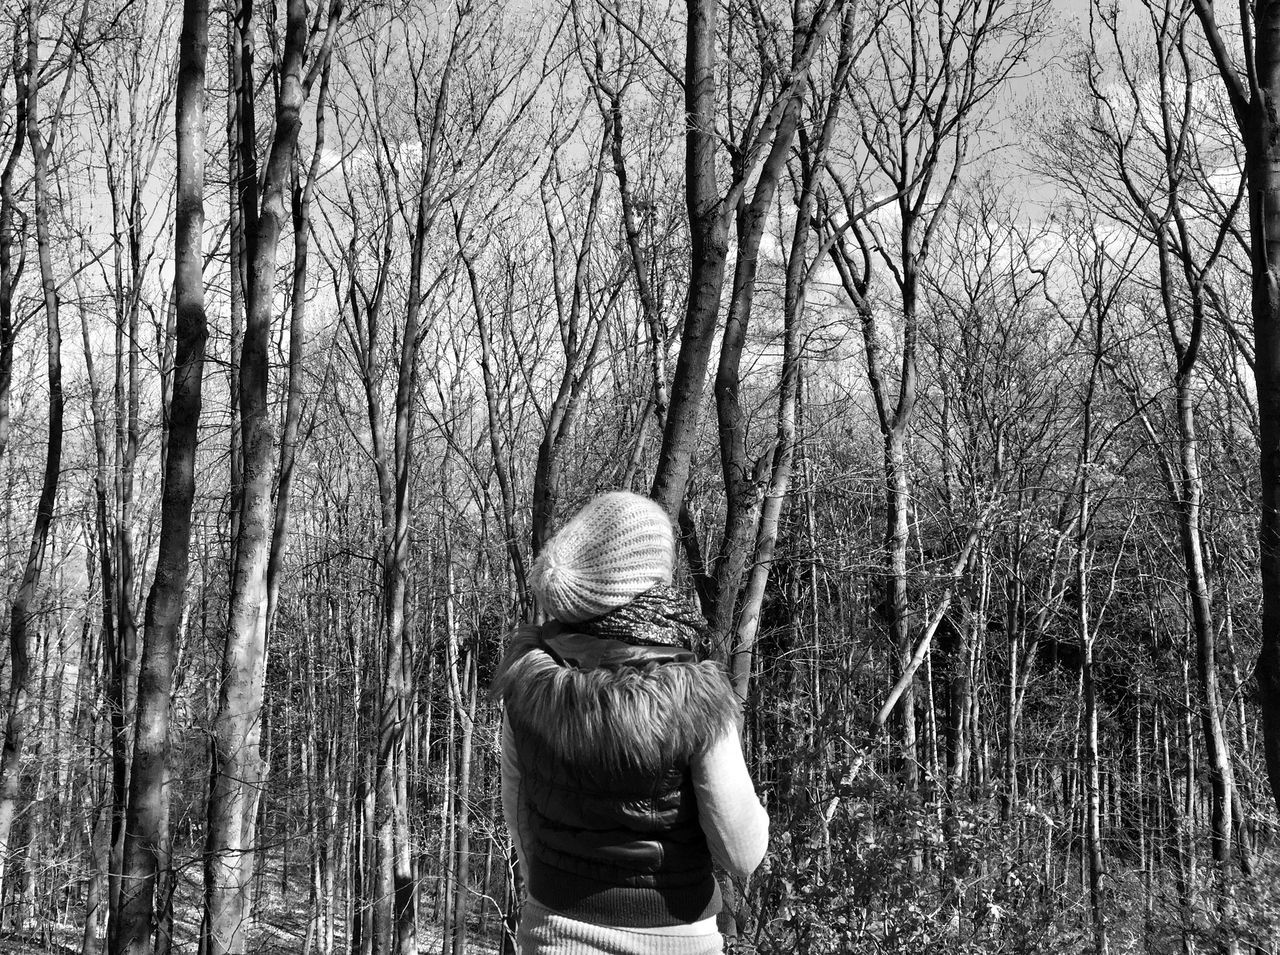 bare tree, rear view, tree, real people, one person, nature, leisure activity, branch, tree trunk, lifestyles, women, outdoors, forest, day, warm clothing, beauty in nature, people